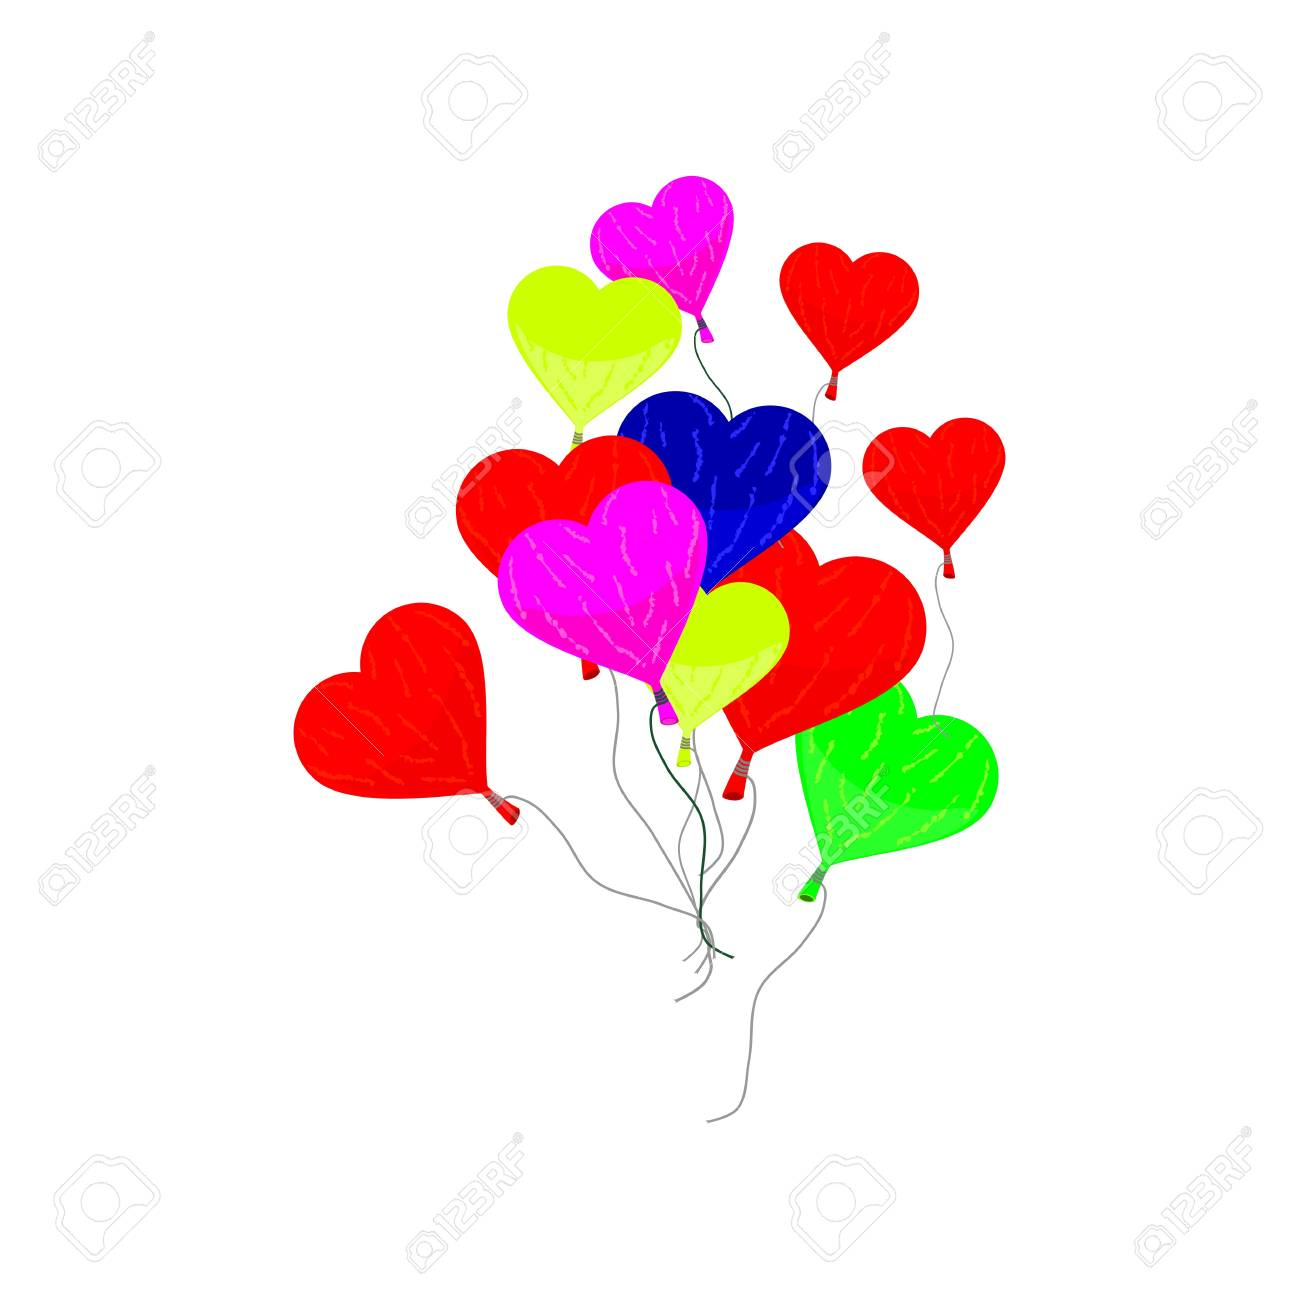 Colorful balloons in the shape of a heart on a white background Stock Vector - 17305342